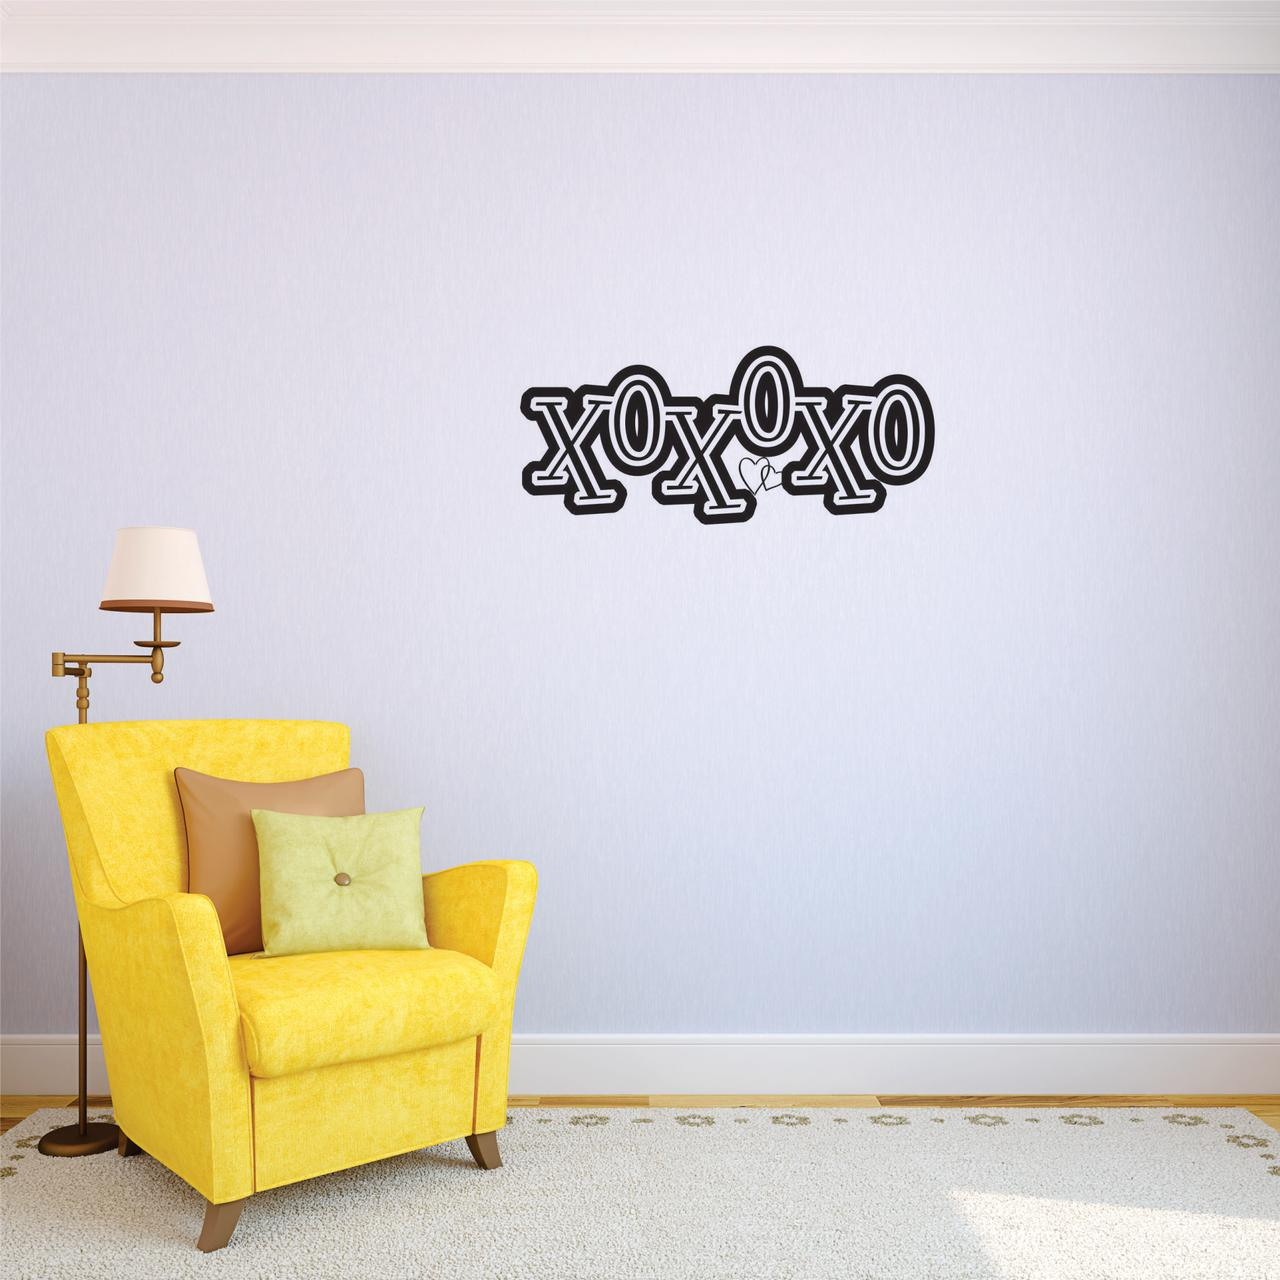 Custom Decals Xoxoxo Wall Art Size: 8 Inches x 20 Inches Color: Black